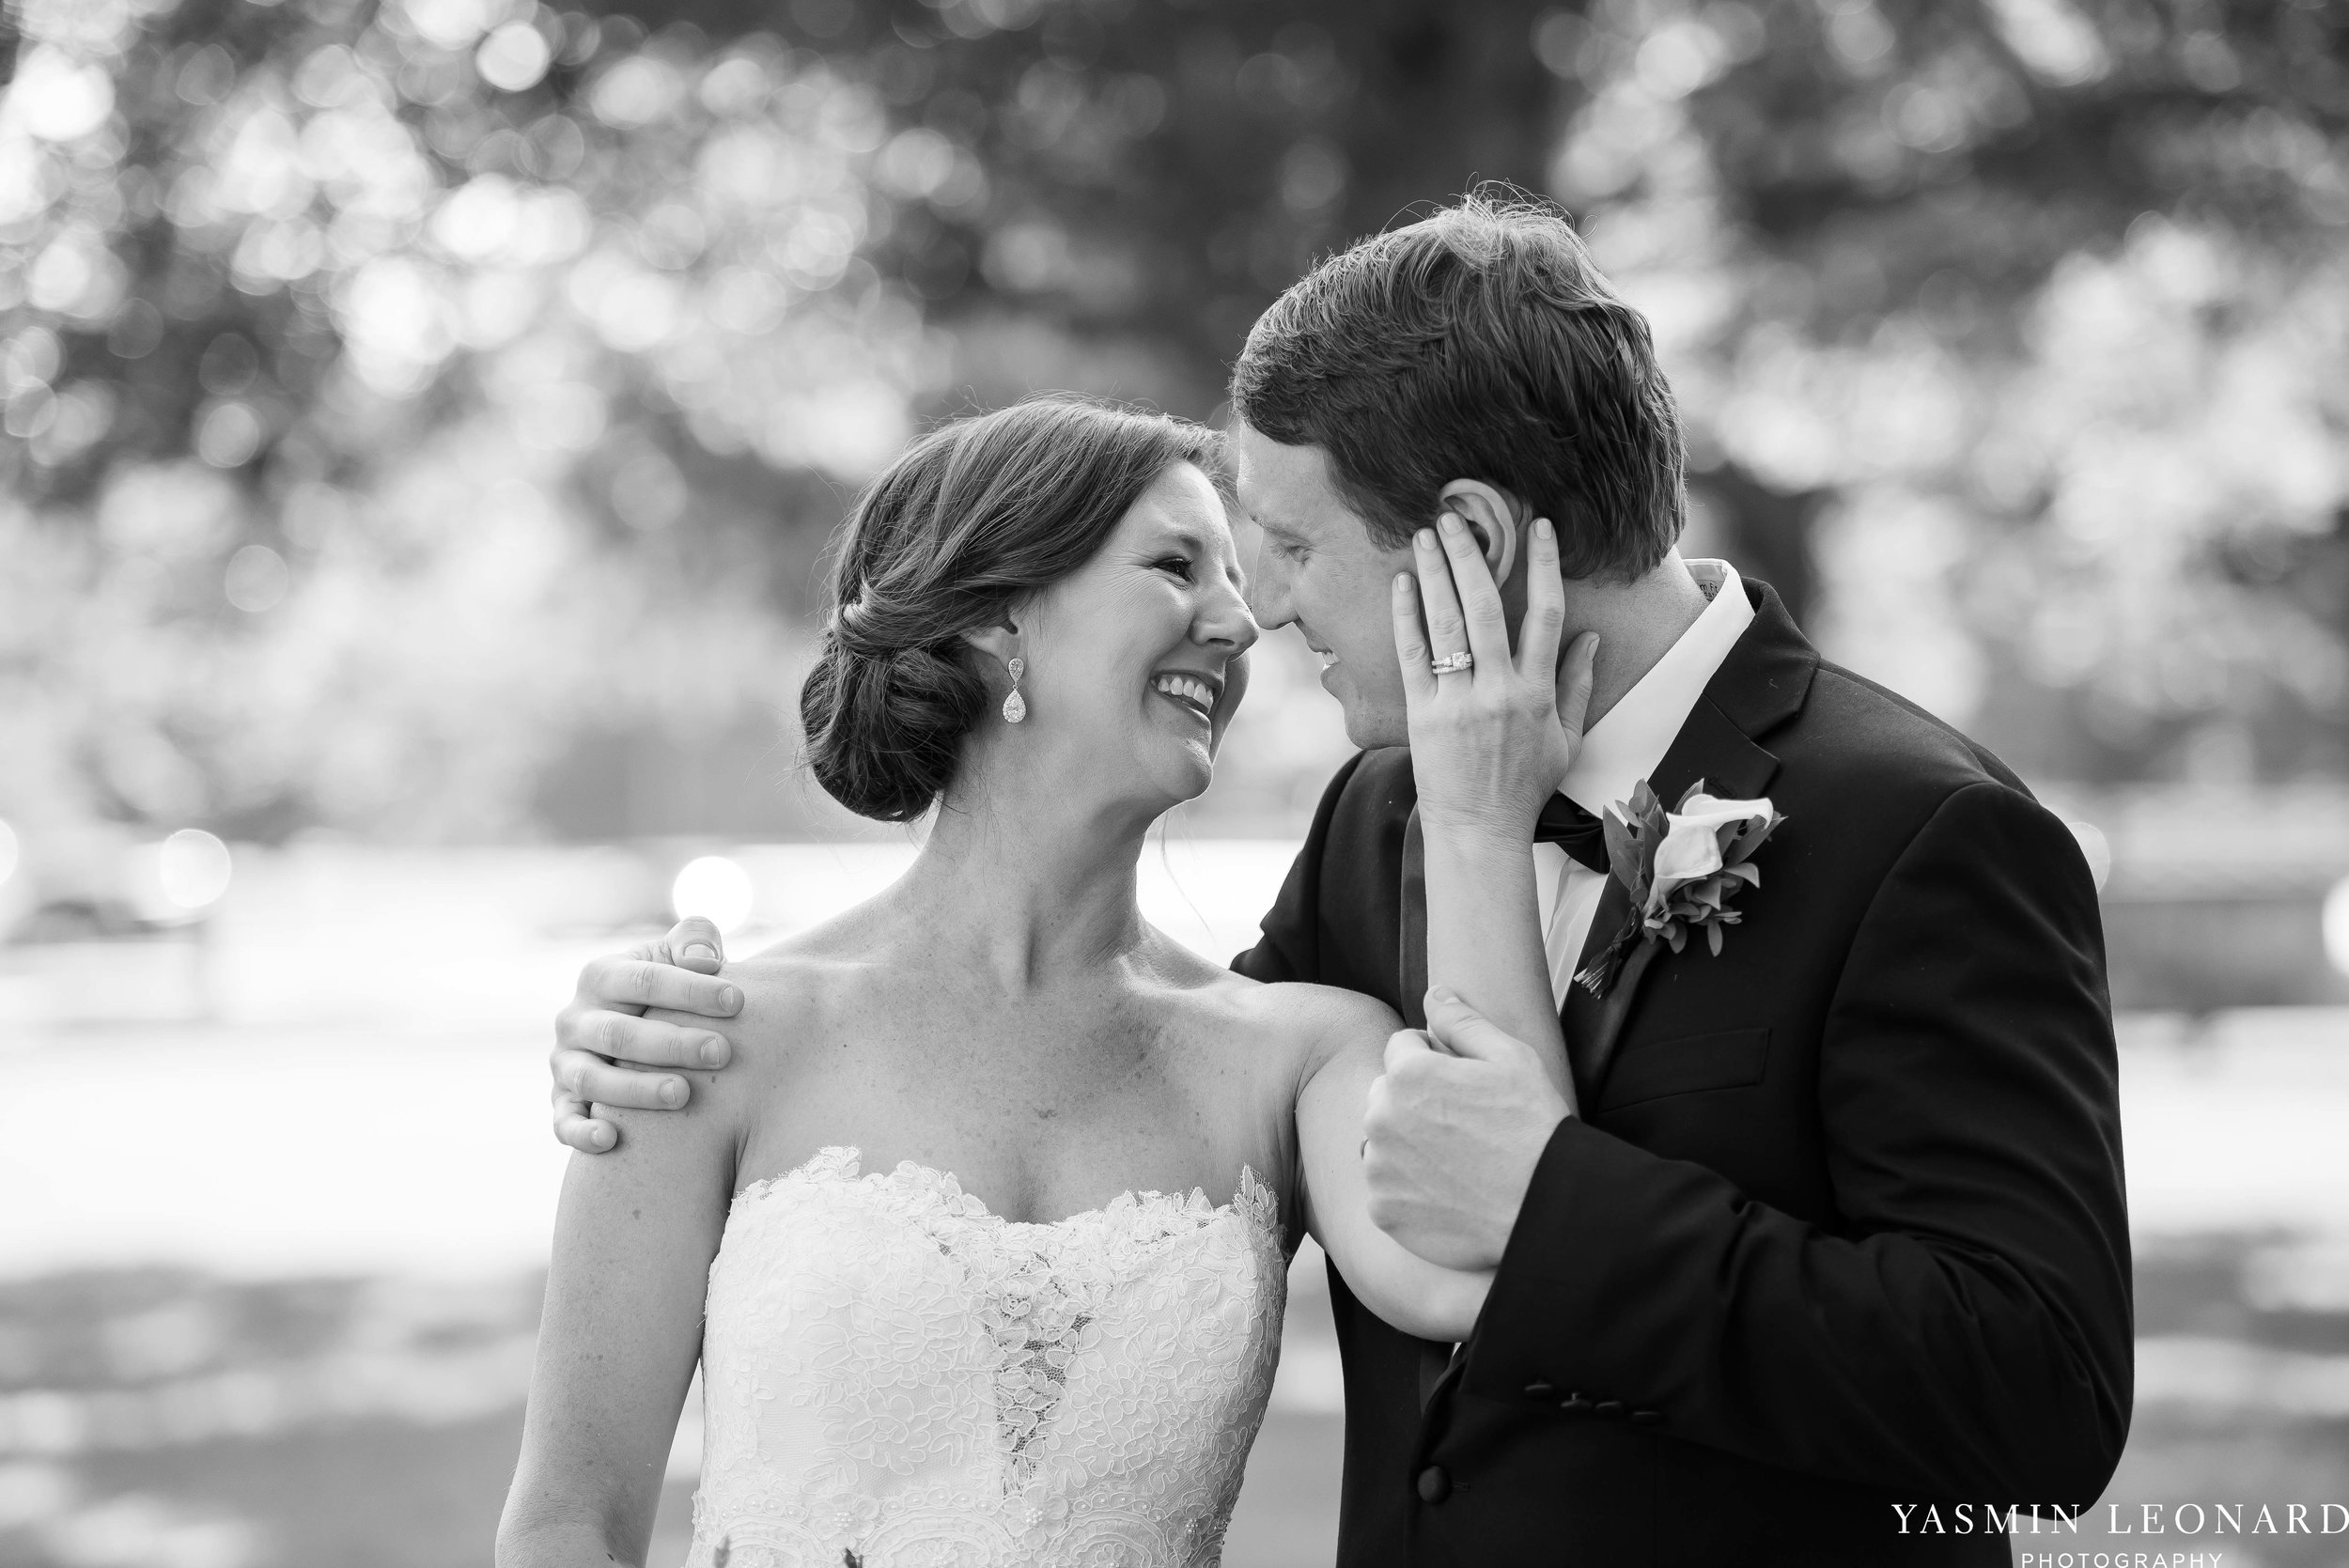 String and Splinter Club - Wesley Memorial UMC - High Point Weddings - NC Venues - High Point Weddings - Yasmin Leonard Photography-38.jpg